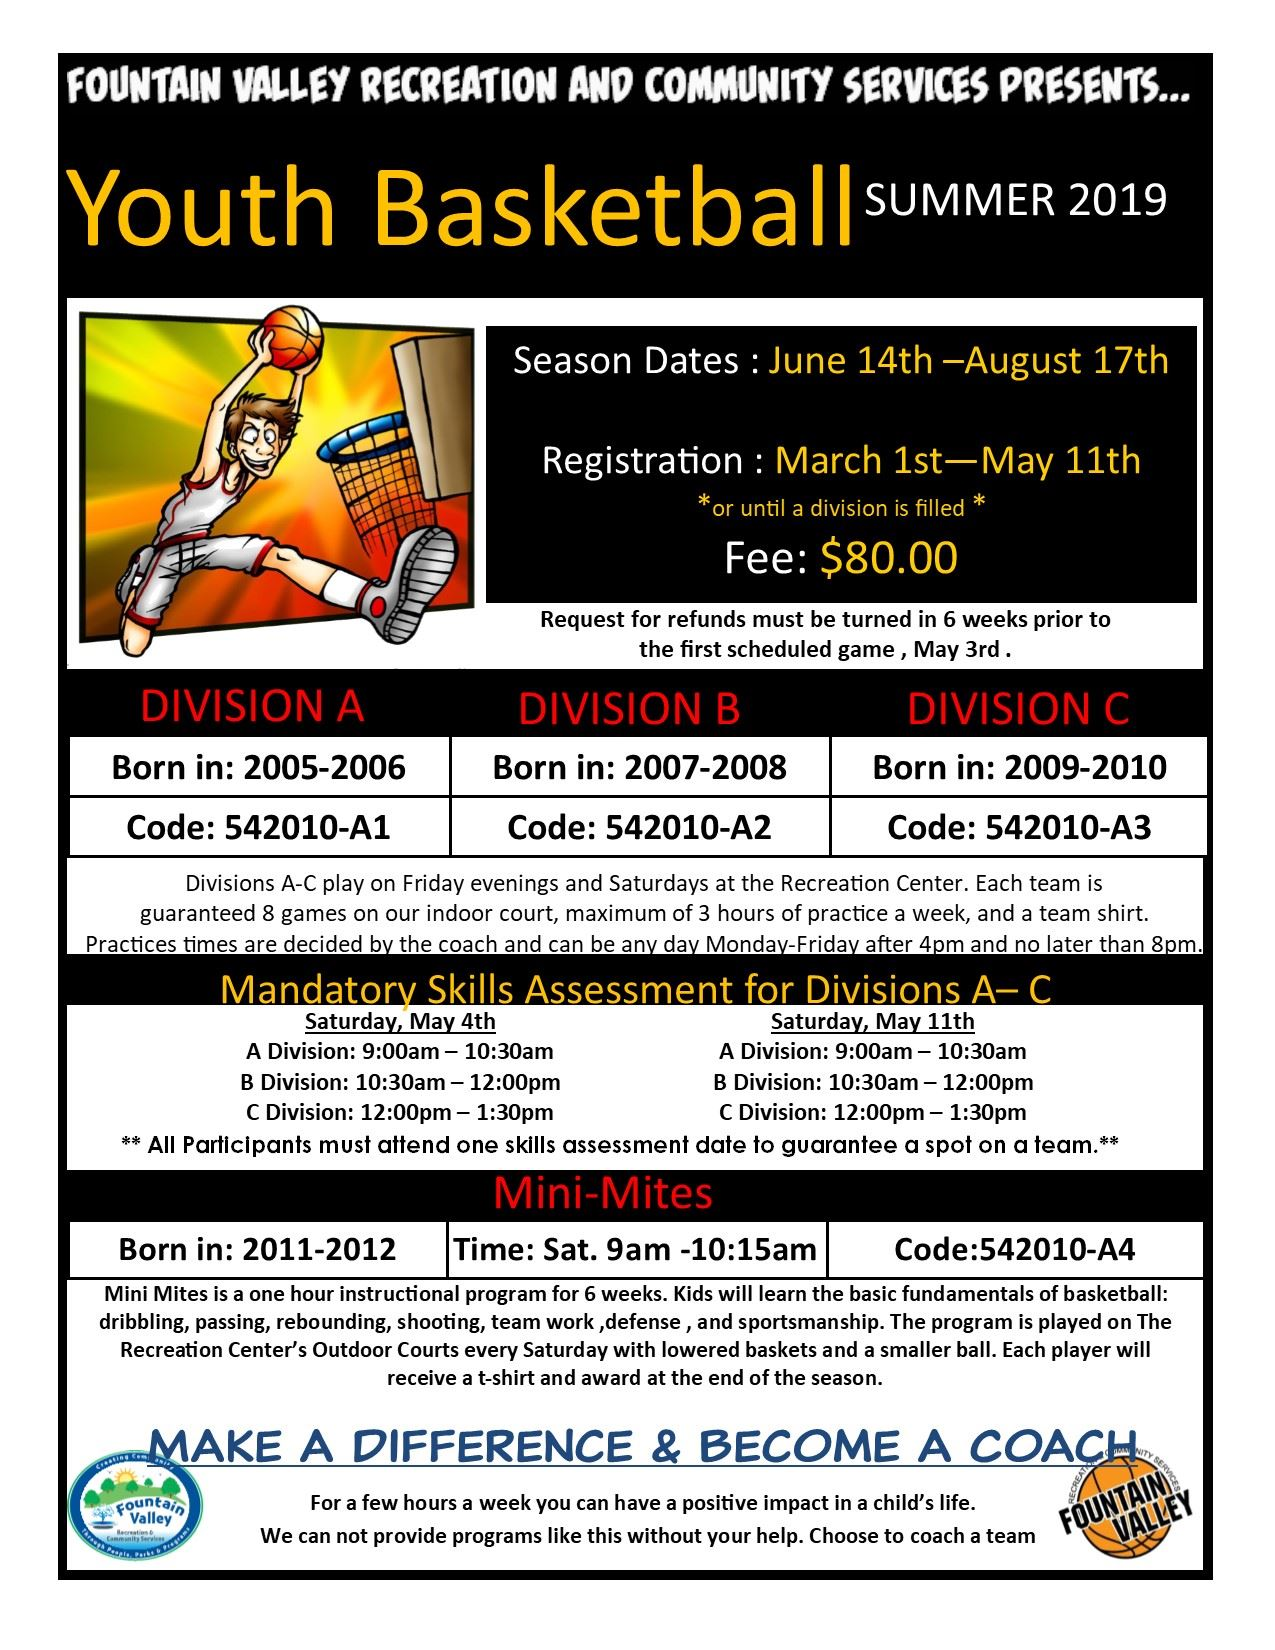 Youth Basketball Summer 2019 Flyer